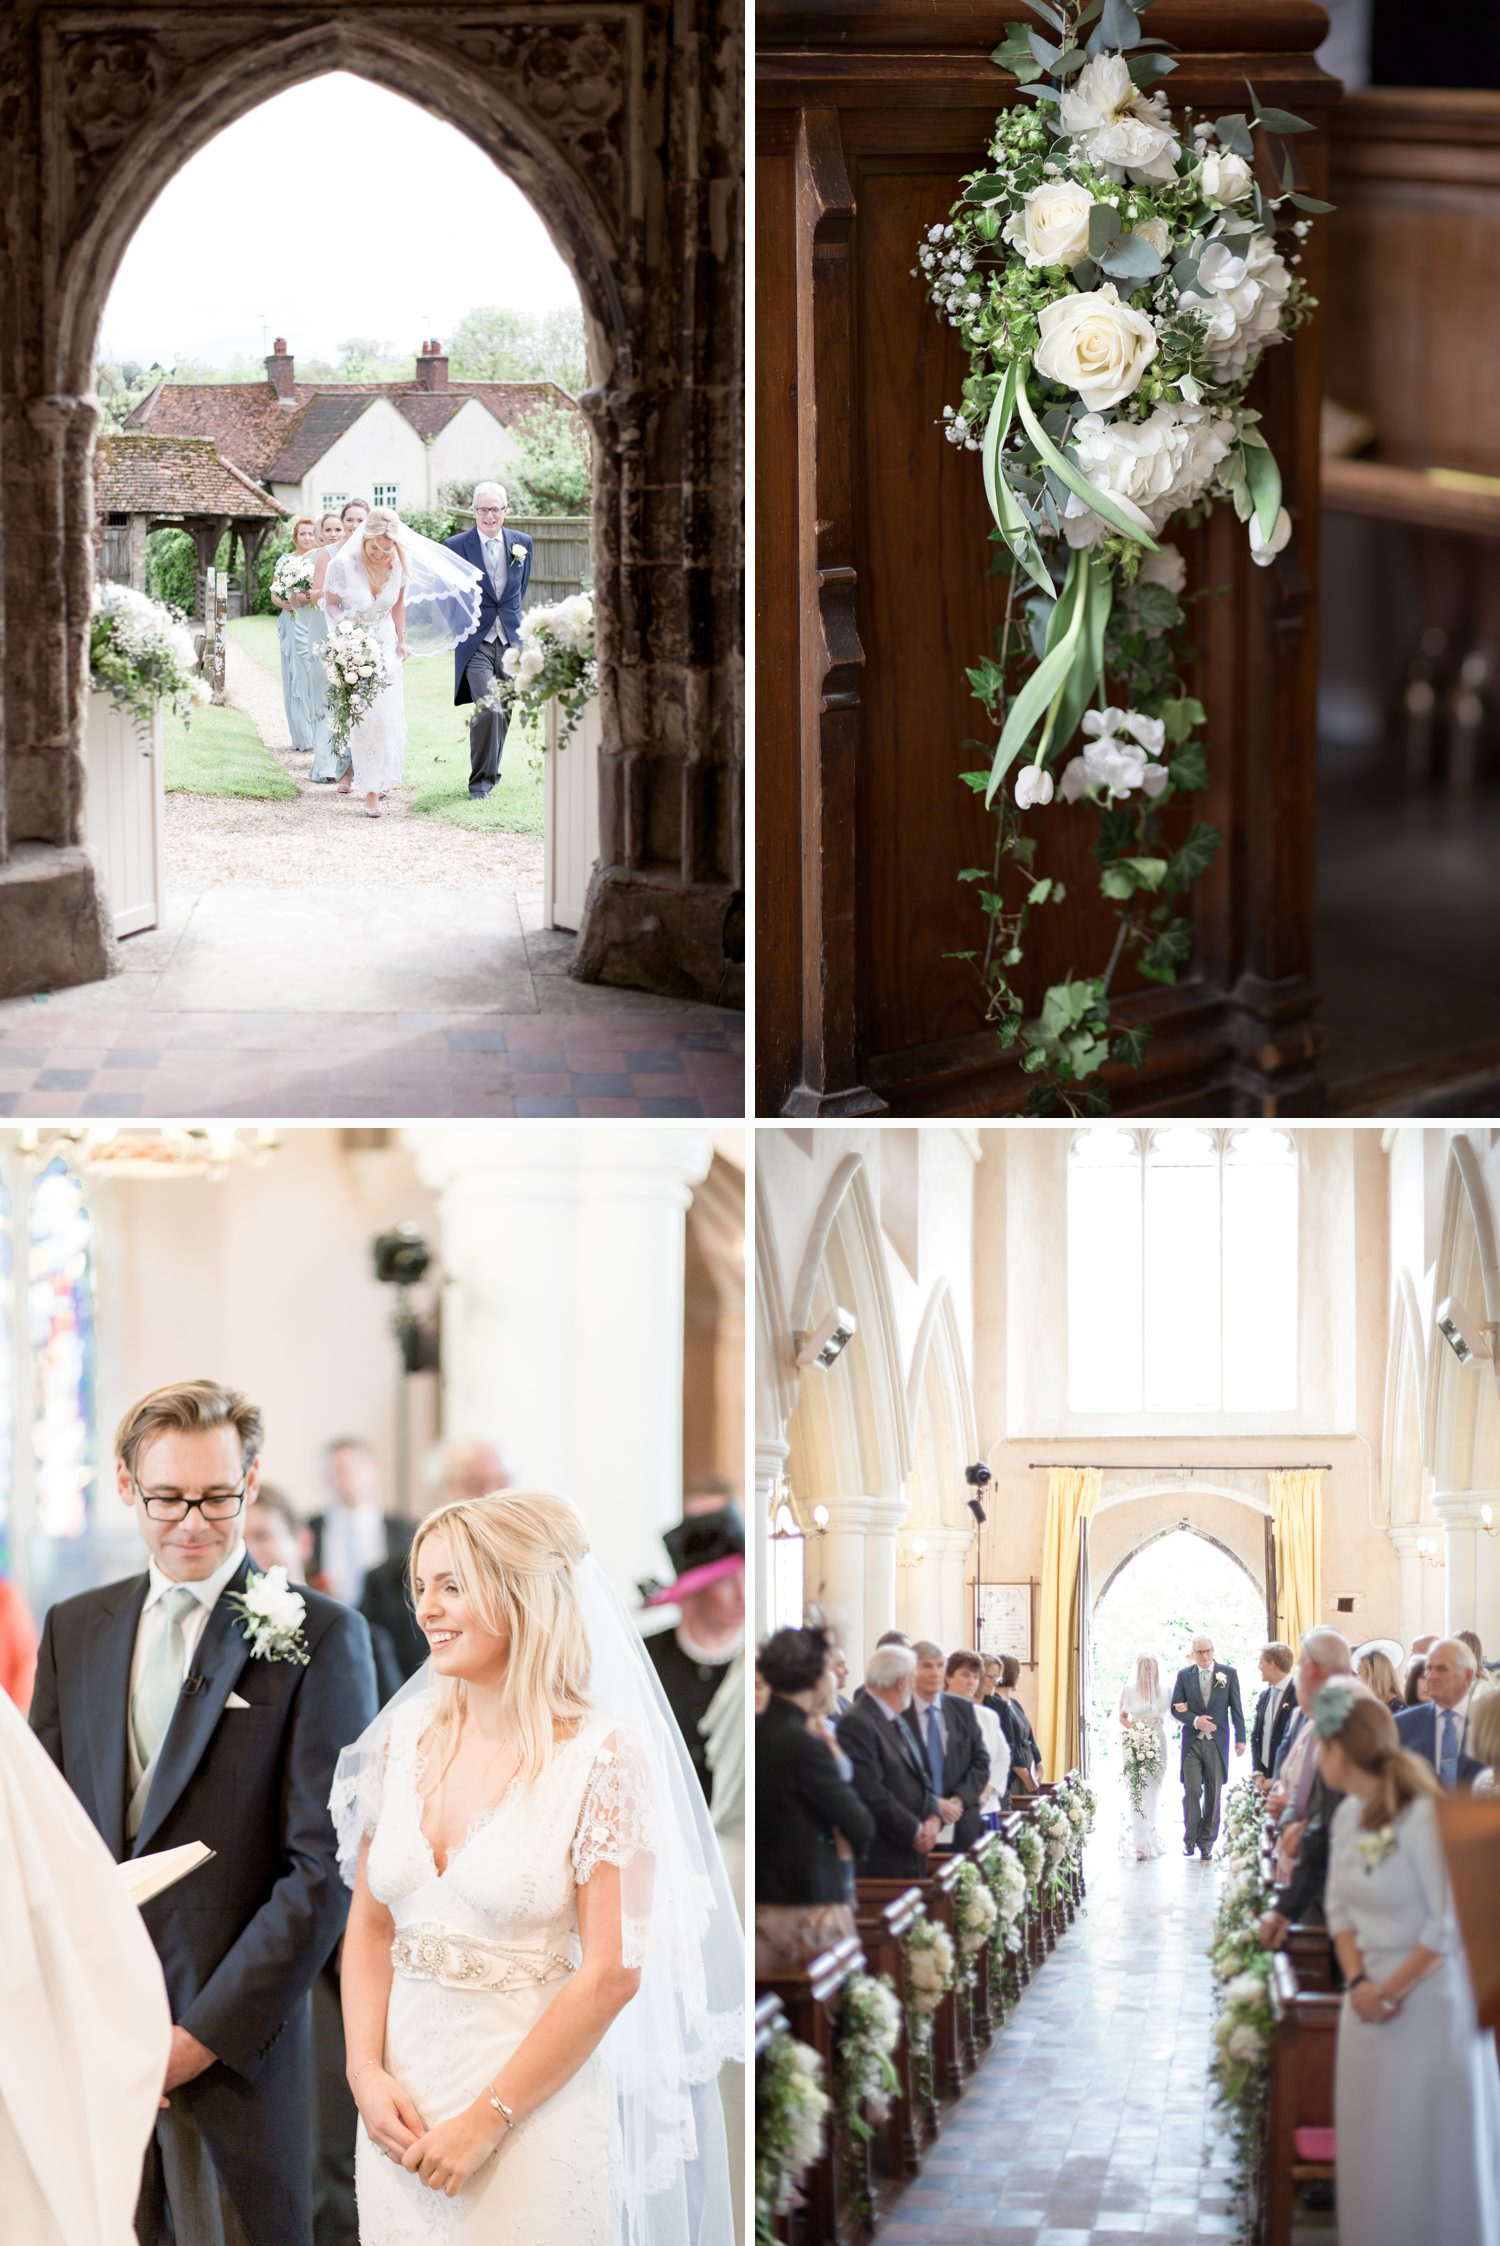 Emily & Jonathan's Cambridgeshire wedding - couple marry in an ancient church